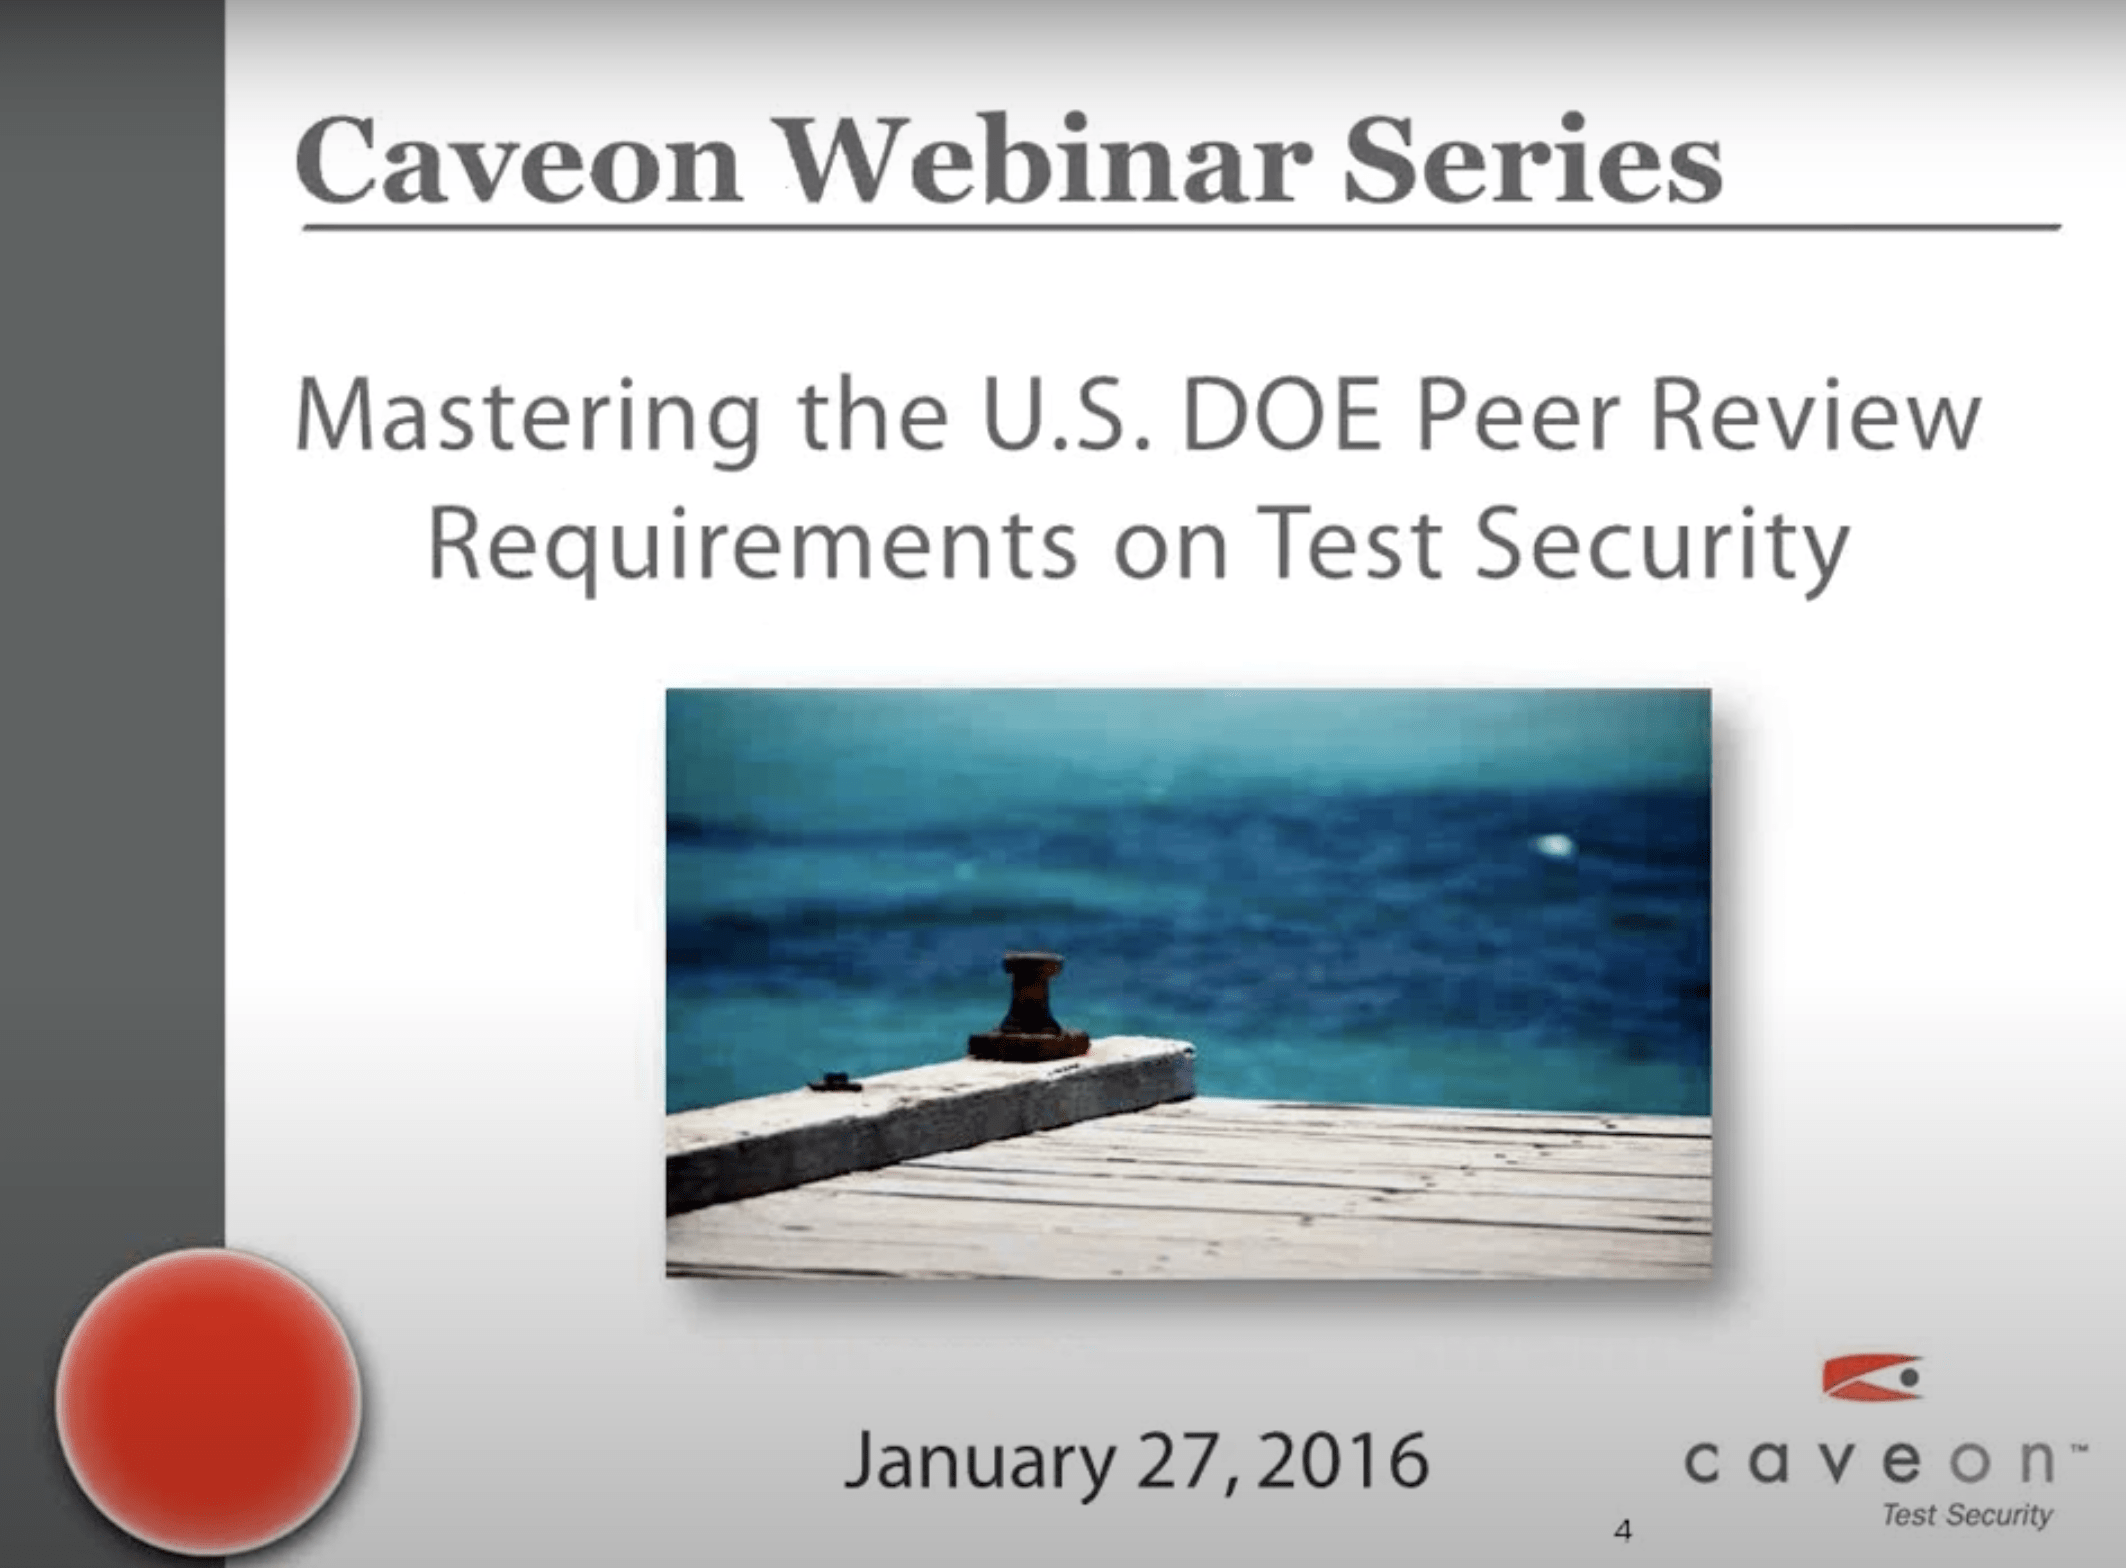 Mastering the U.S. DOE Peer Review Requirements on Test Security